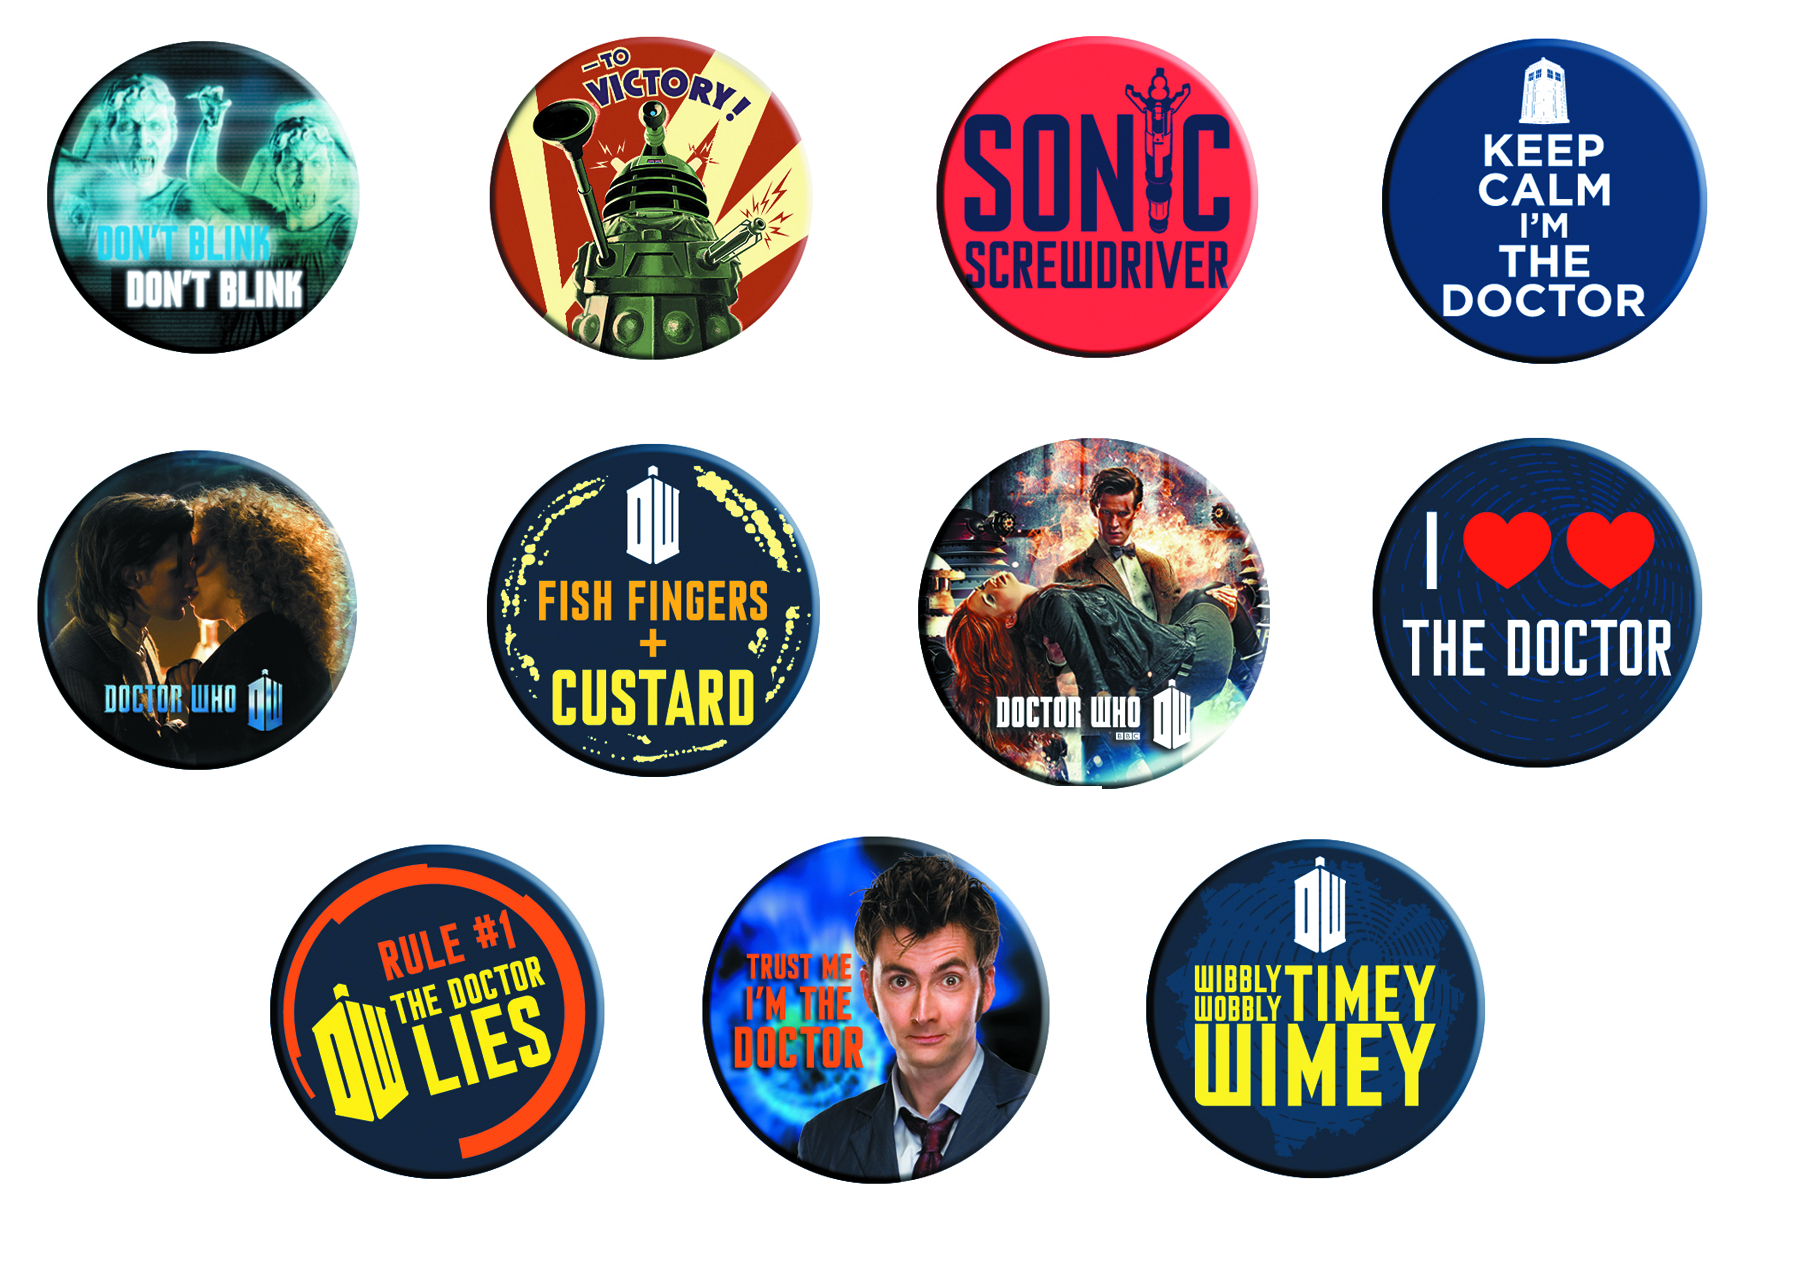 DOCTOR WHO SAYINGS 120 PC BUTTON MAGNET ASST